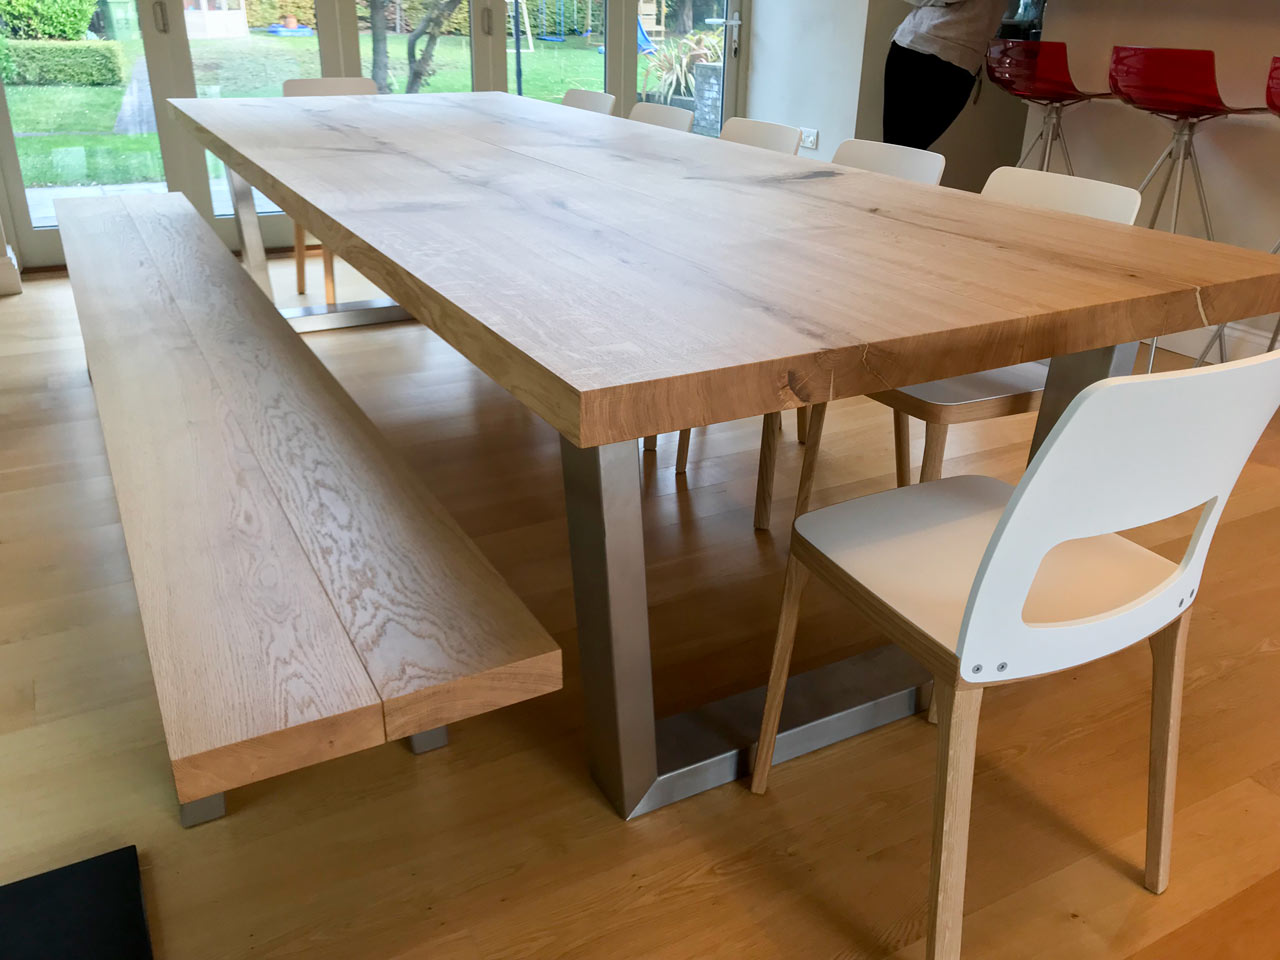 large-oak-slab-dining-table-abacus-tables-project-703-pic4